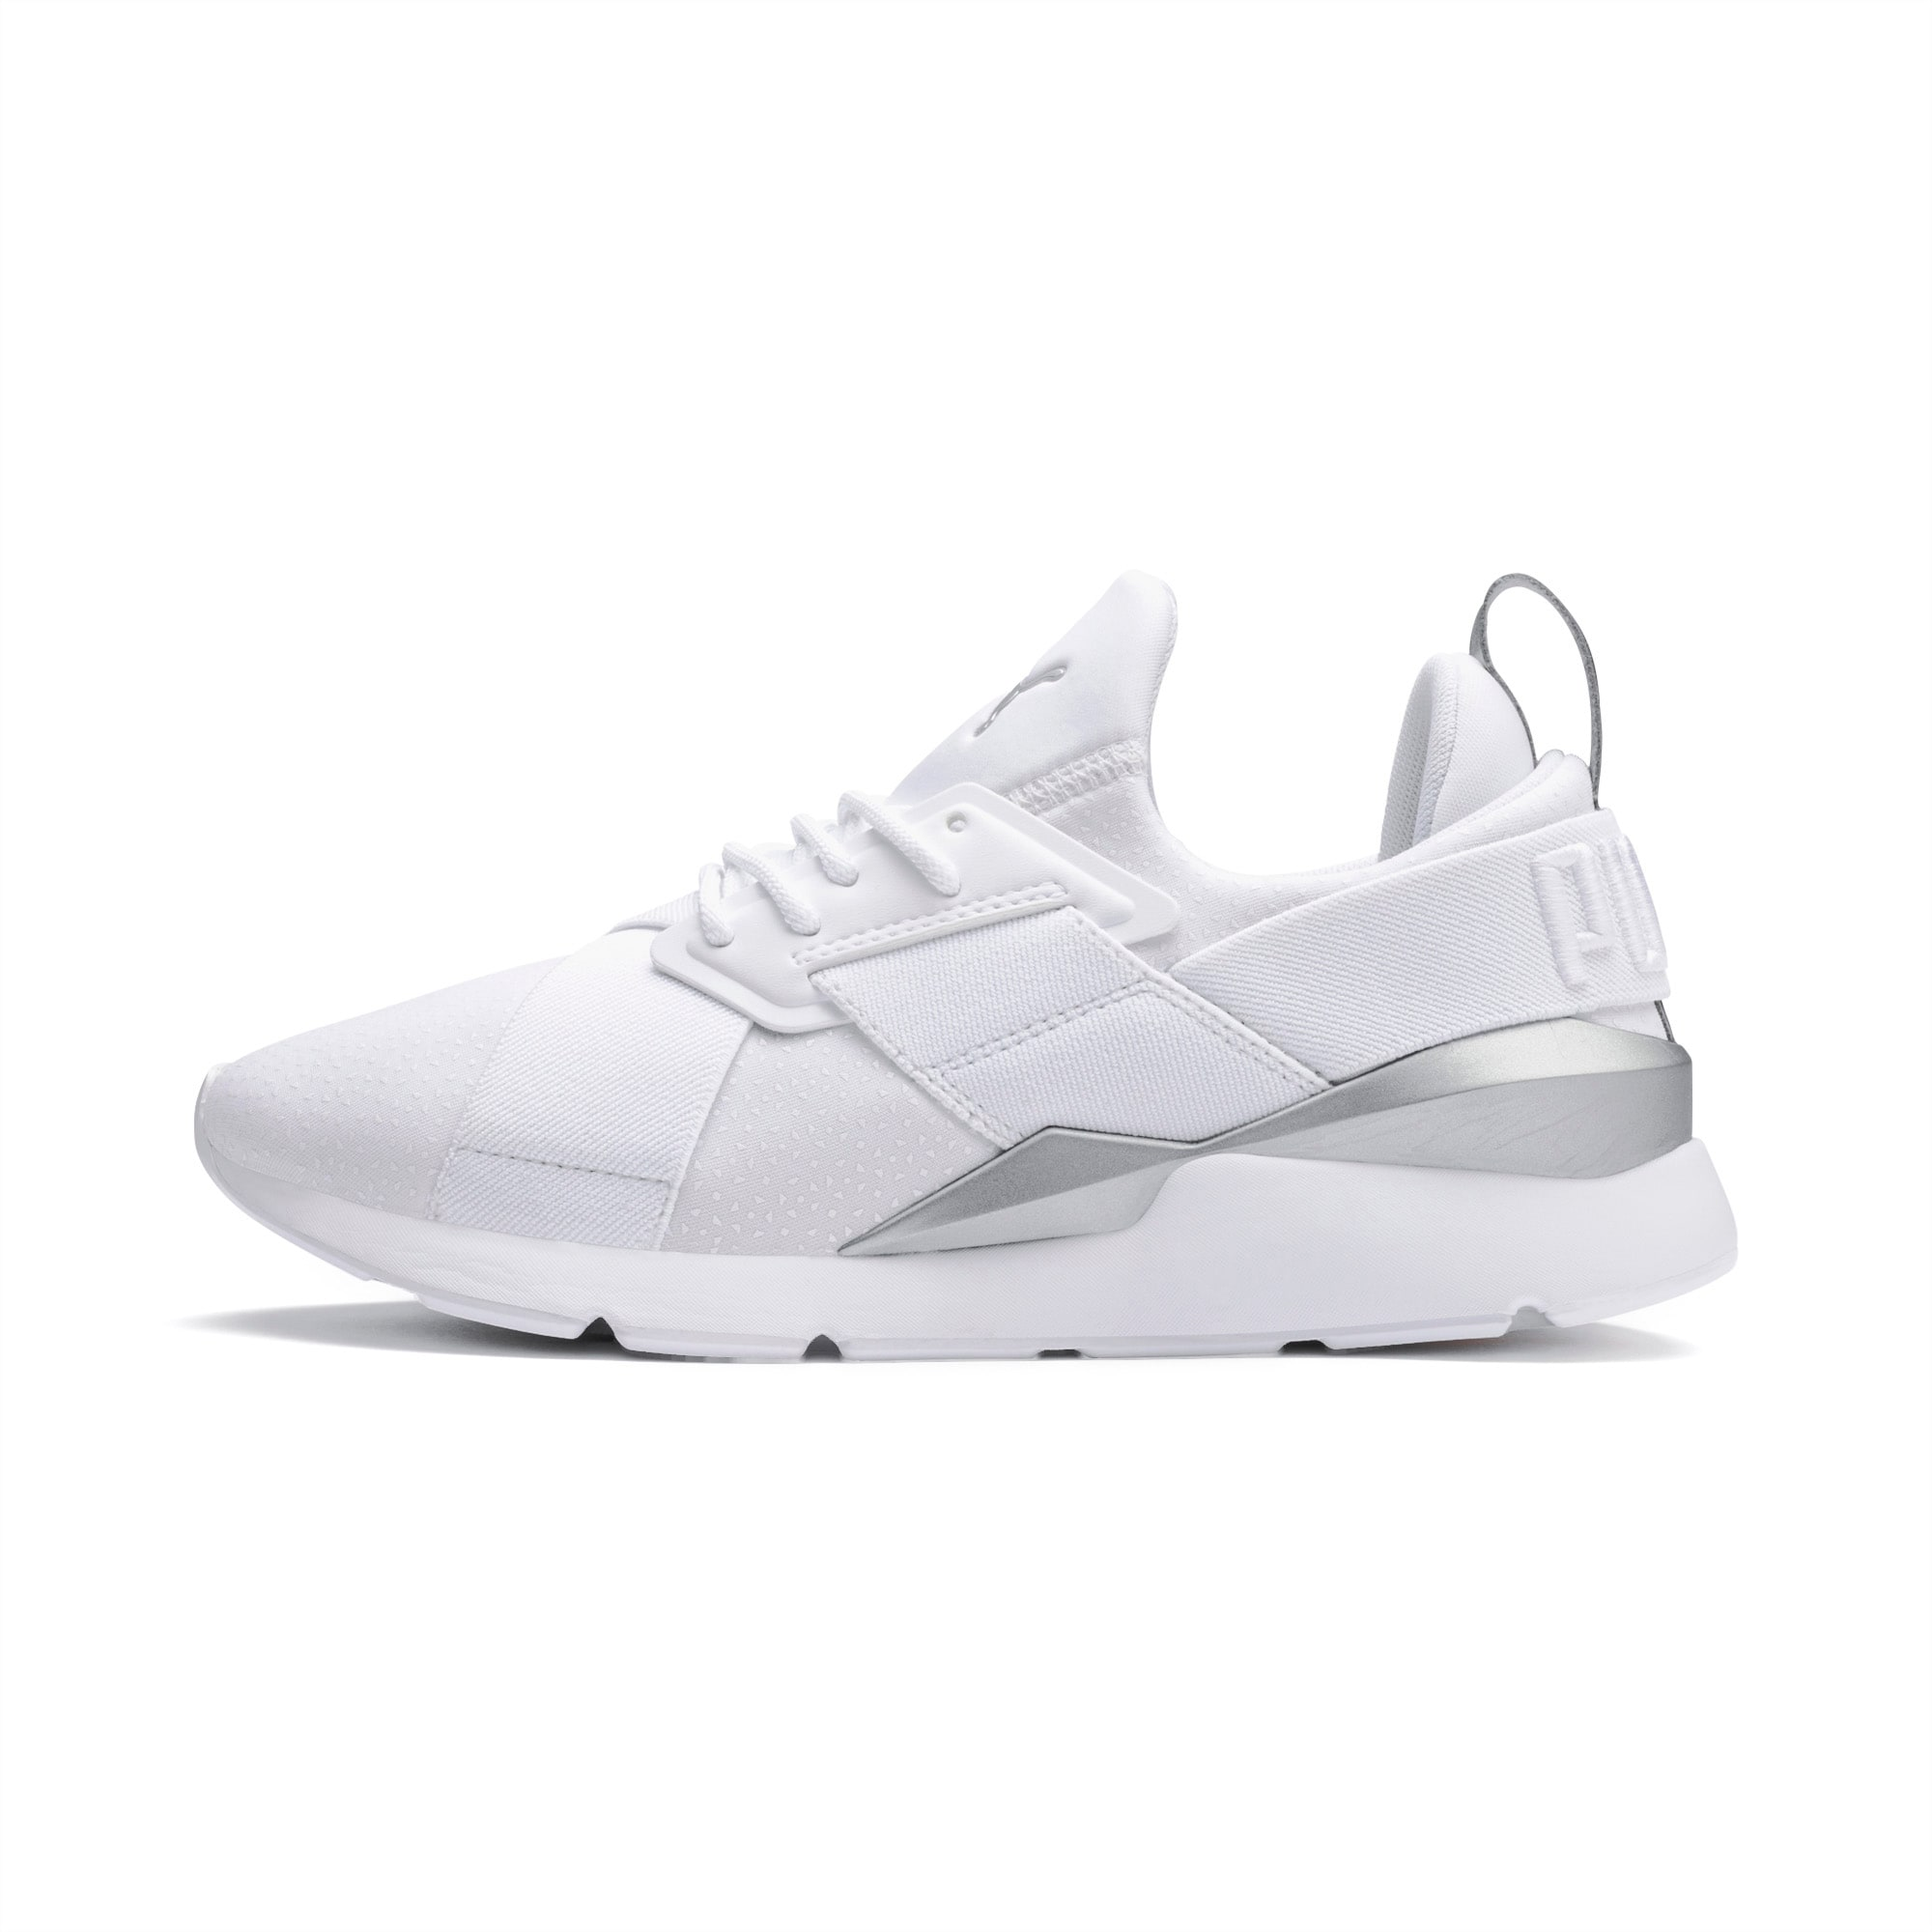 Womens Puma Muse X 2 Athletic Shoe White Silver   Journeys